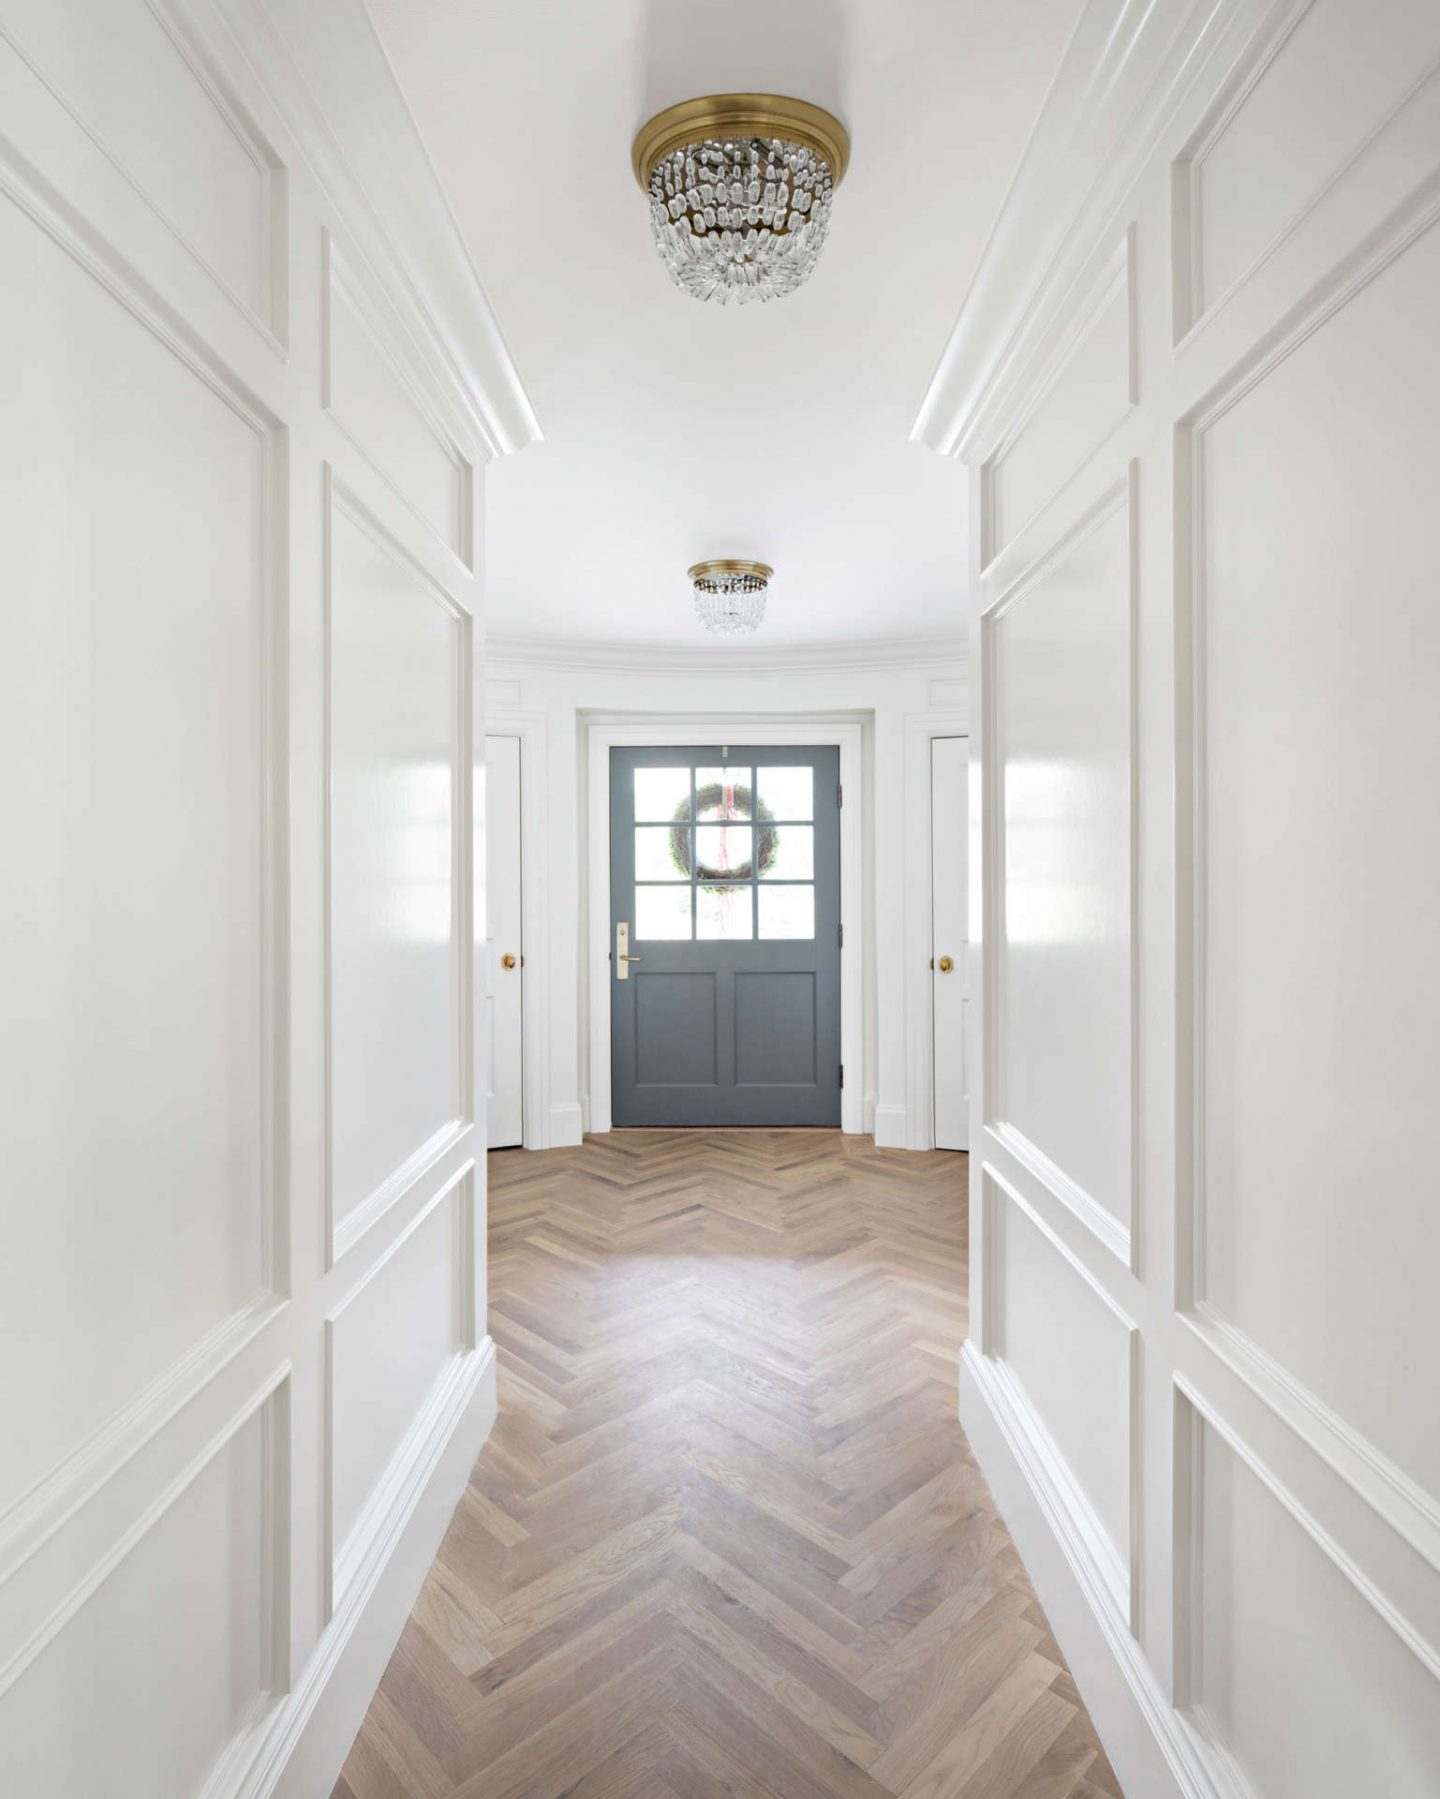 Herringbone flooring and beautiful paneled walls painted Benjamin Moore Simply White. The Fox Group. #benjaminmooresimplywhite #interiordesign #thefoxgroup